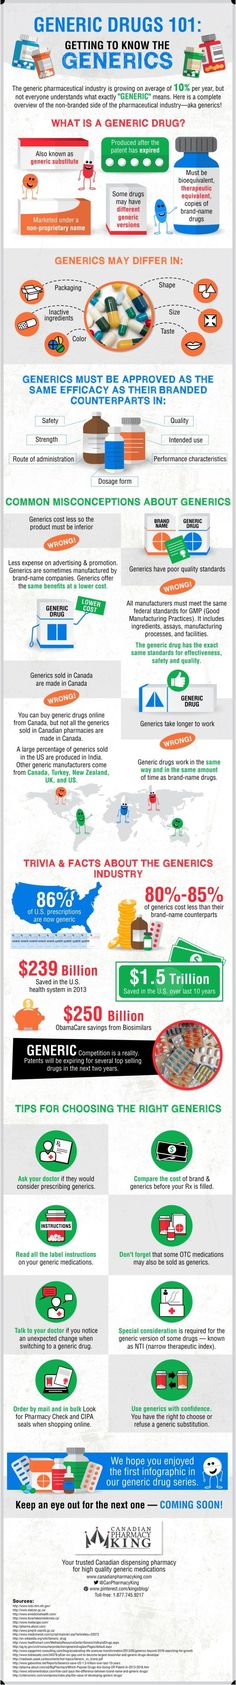 Generic Drugs 101: Getting to Know the Generics   [by Canadian Pharmacy King -- via #tipsographic]. More at http://tipsographic.com